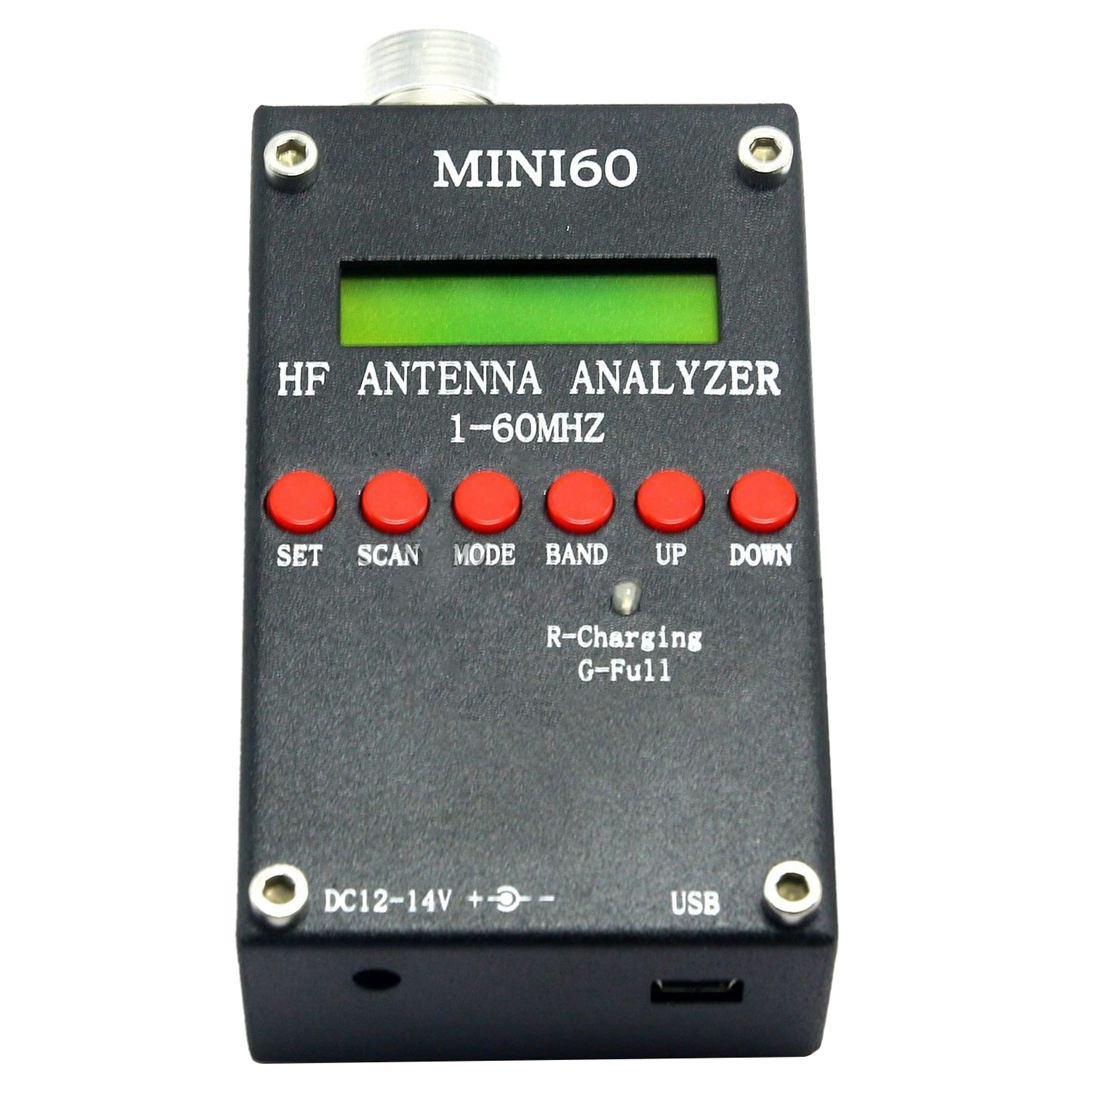 Mini60 Sark100 HF ANT SWR Antenna Analyzer Meter Bluetooth Android APP (not include battery) new mini60 sark100 hf ant swr antenna analyzer meter bluetooth android app drop shipping